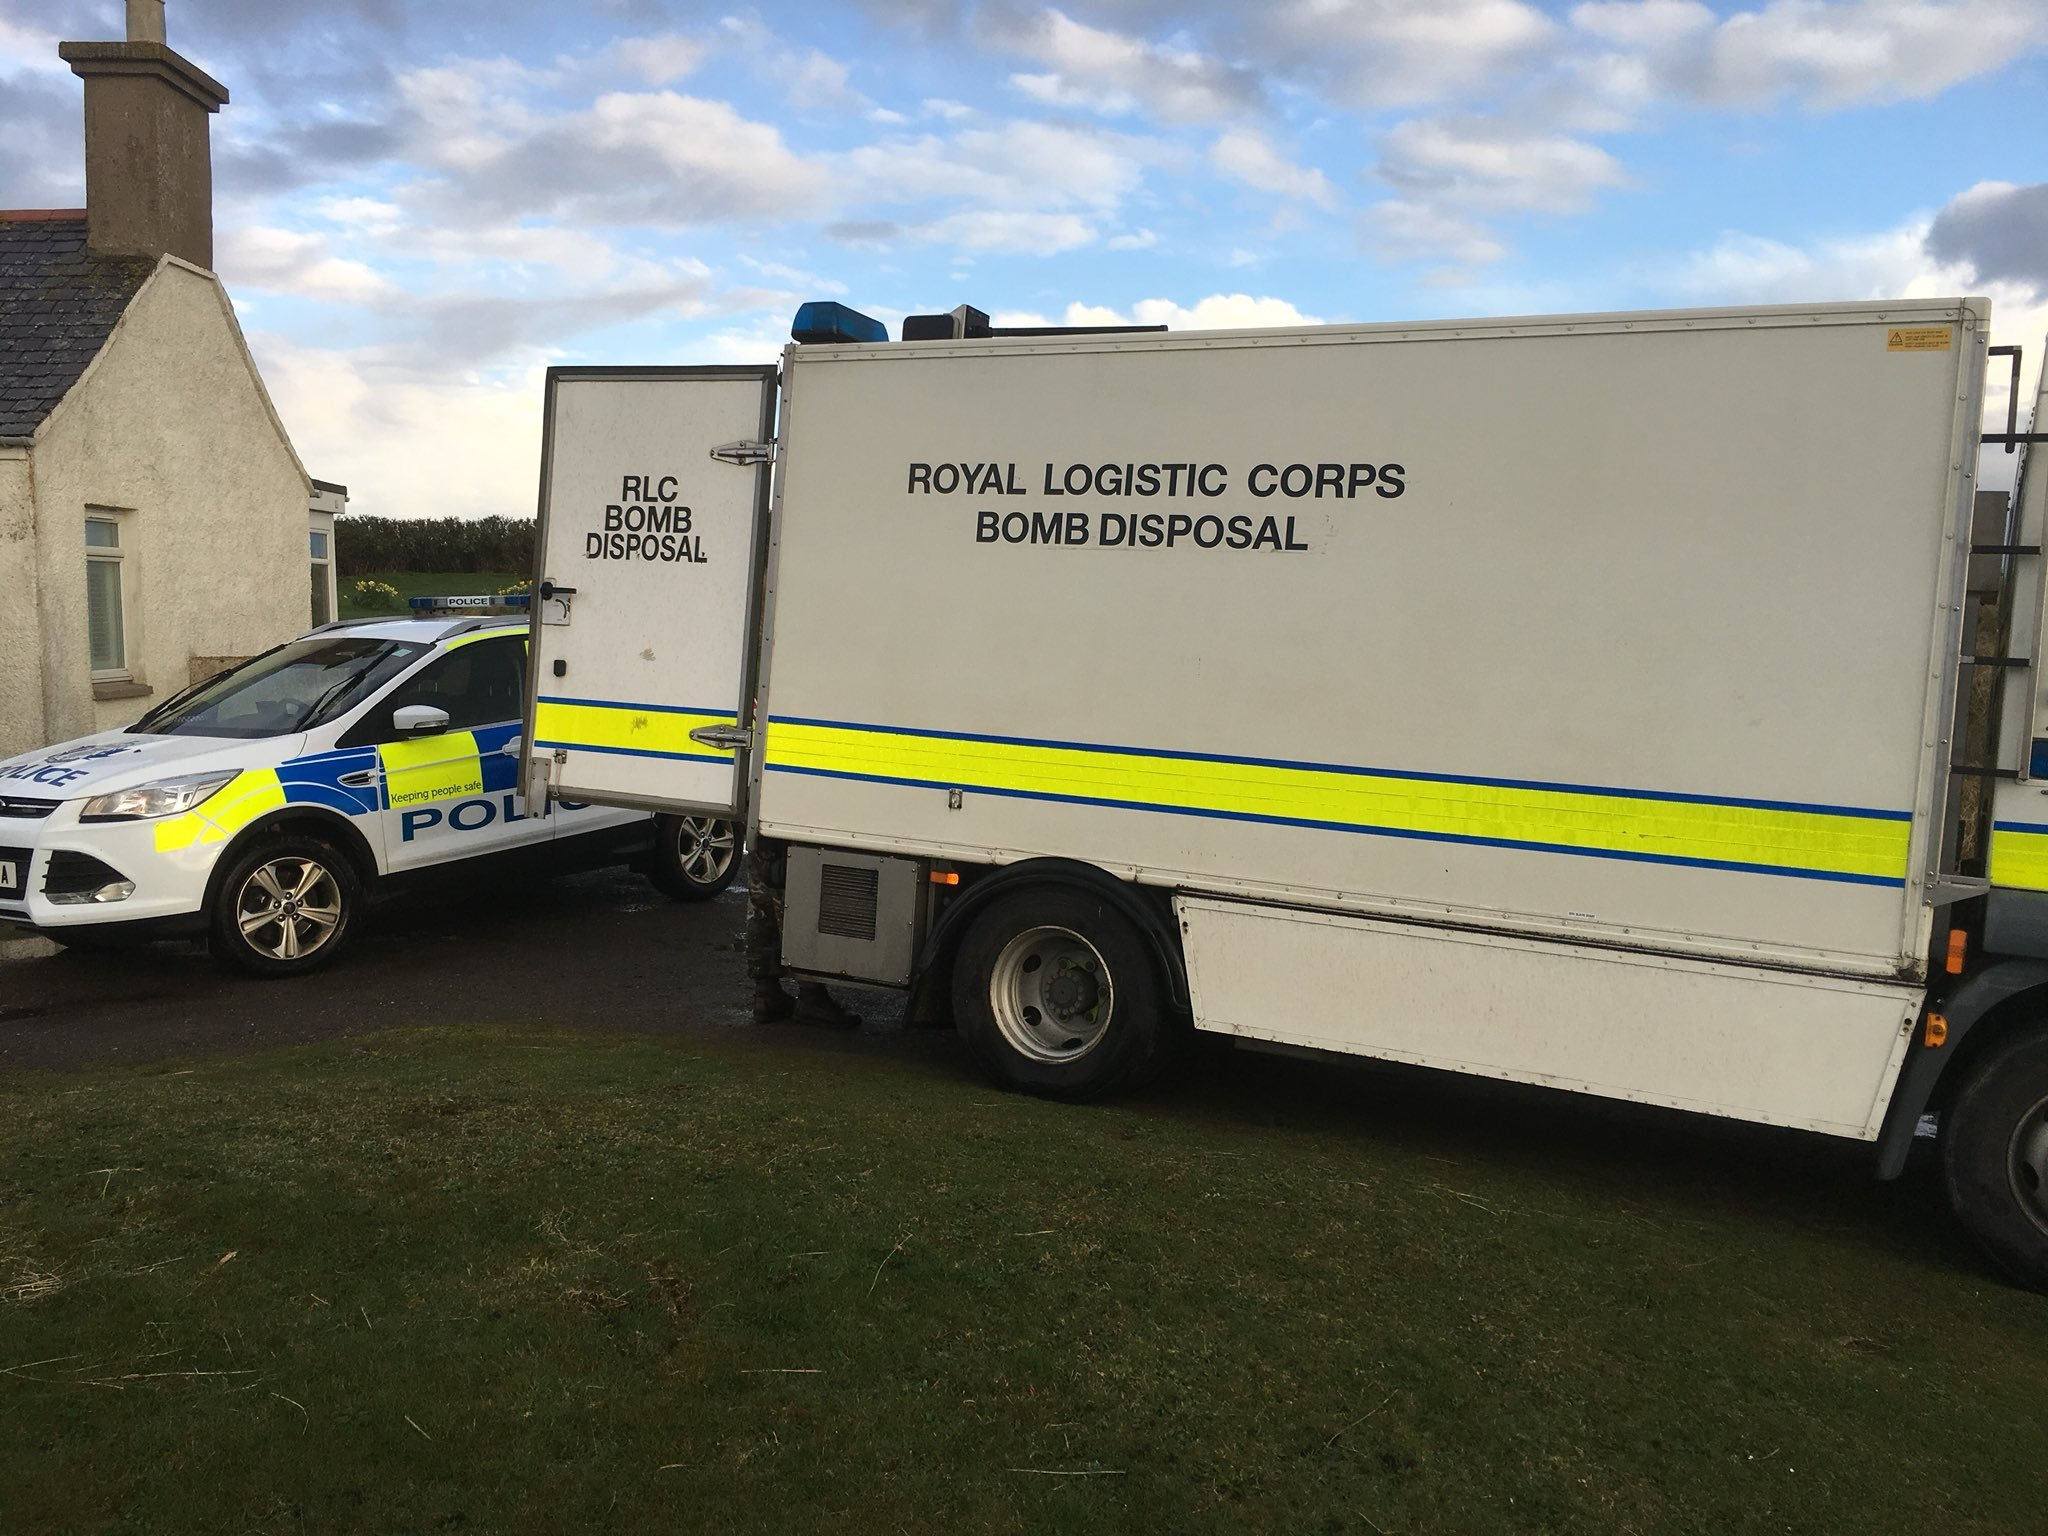 A specialist bomb disposal team was called to Collieston to destroy a Second World War ordnance.